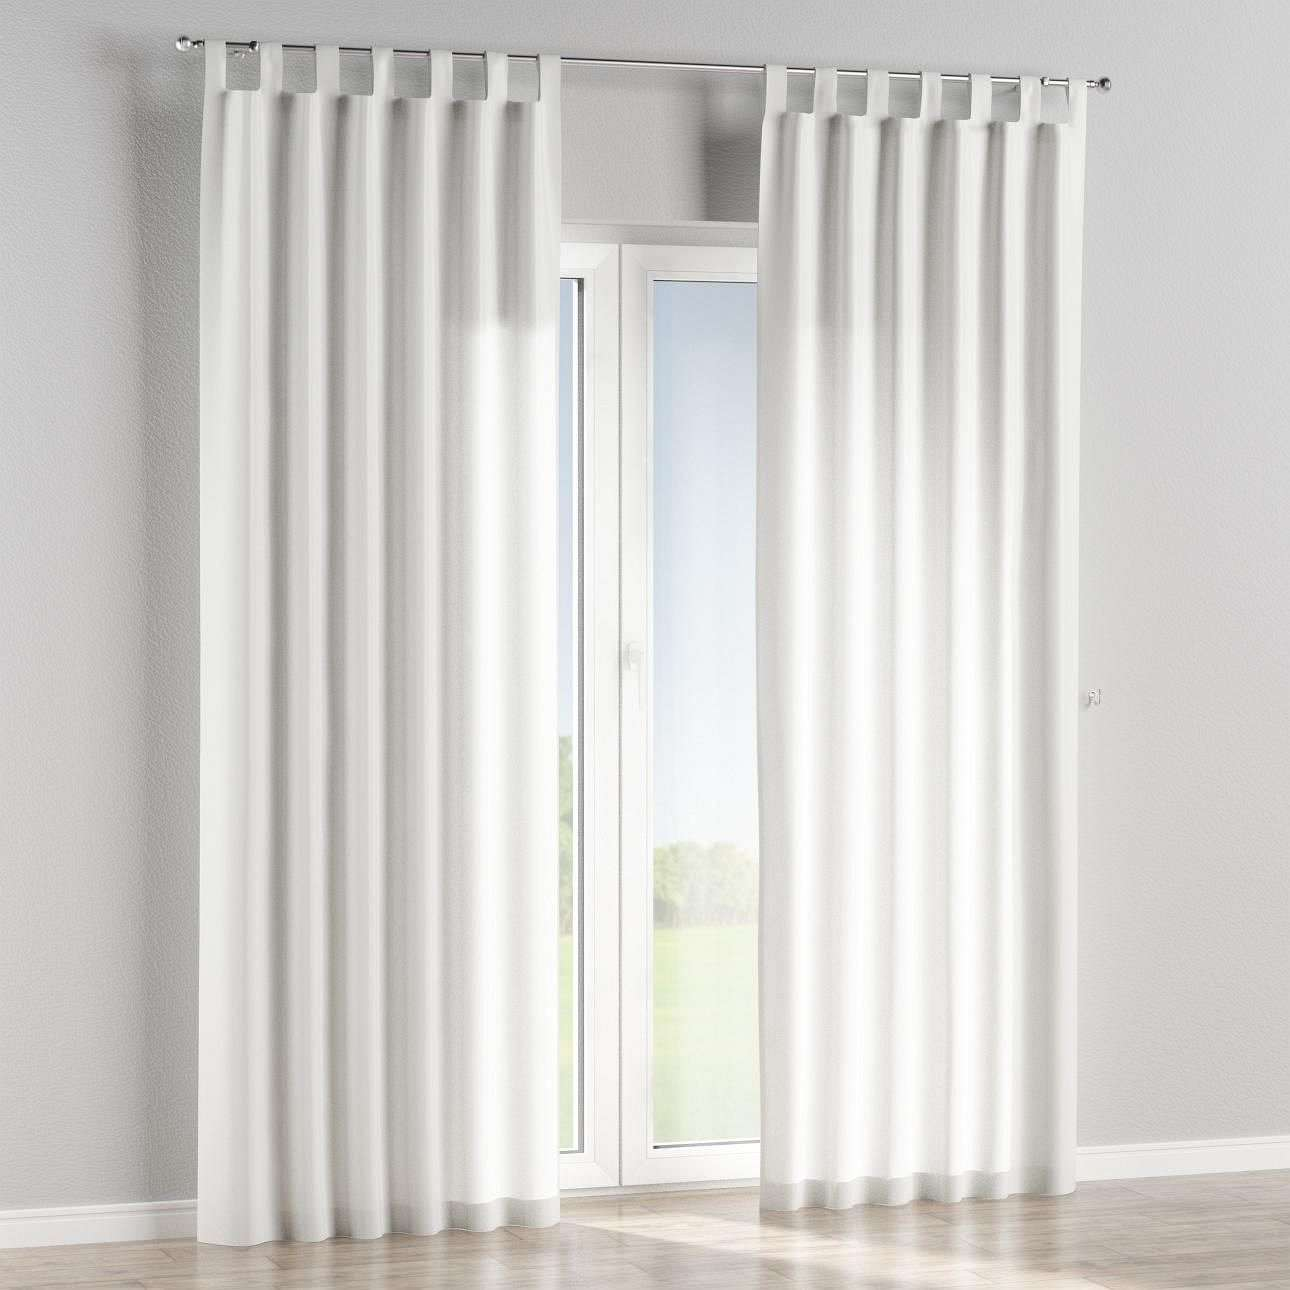 Tab top curtains in collection Fleur , fabric: 137-20